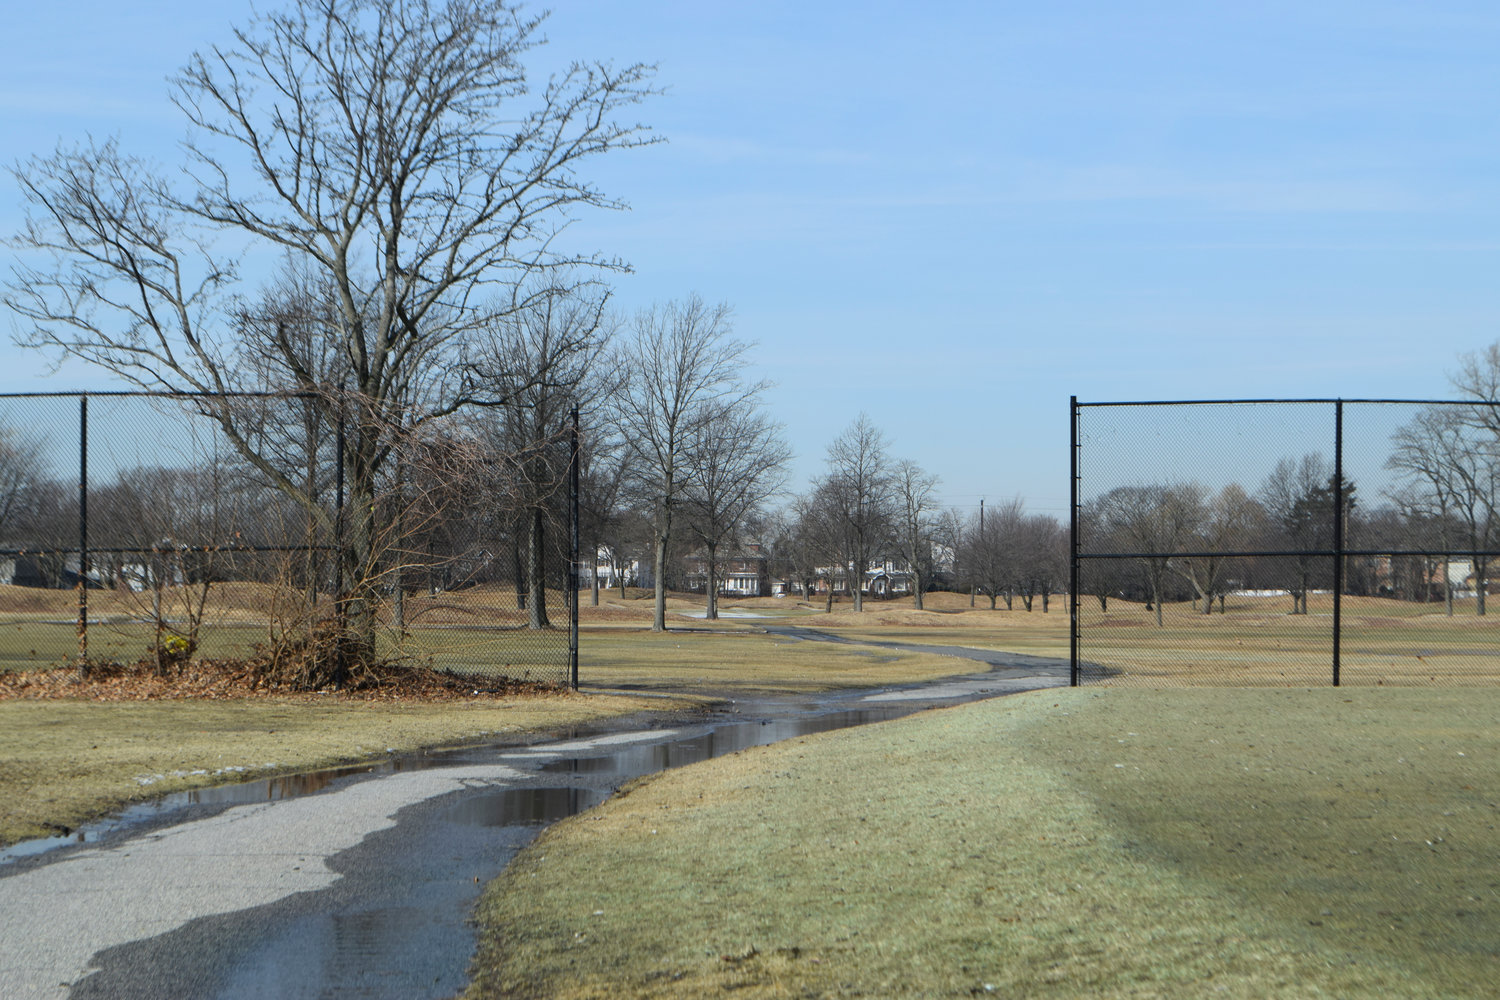 While moratoriums have not impeded development plans for the Woodmere Club, the Town of Hempstead is considering creating either a town park or a park district.